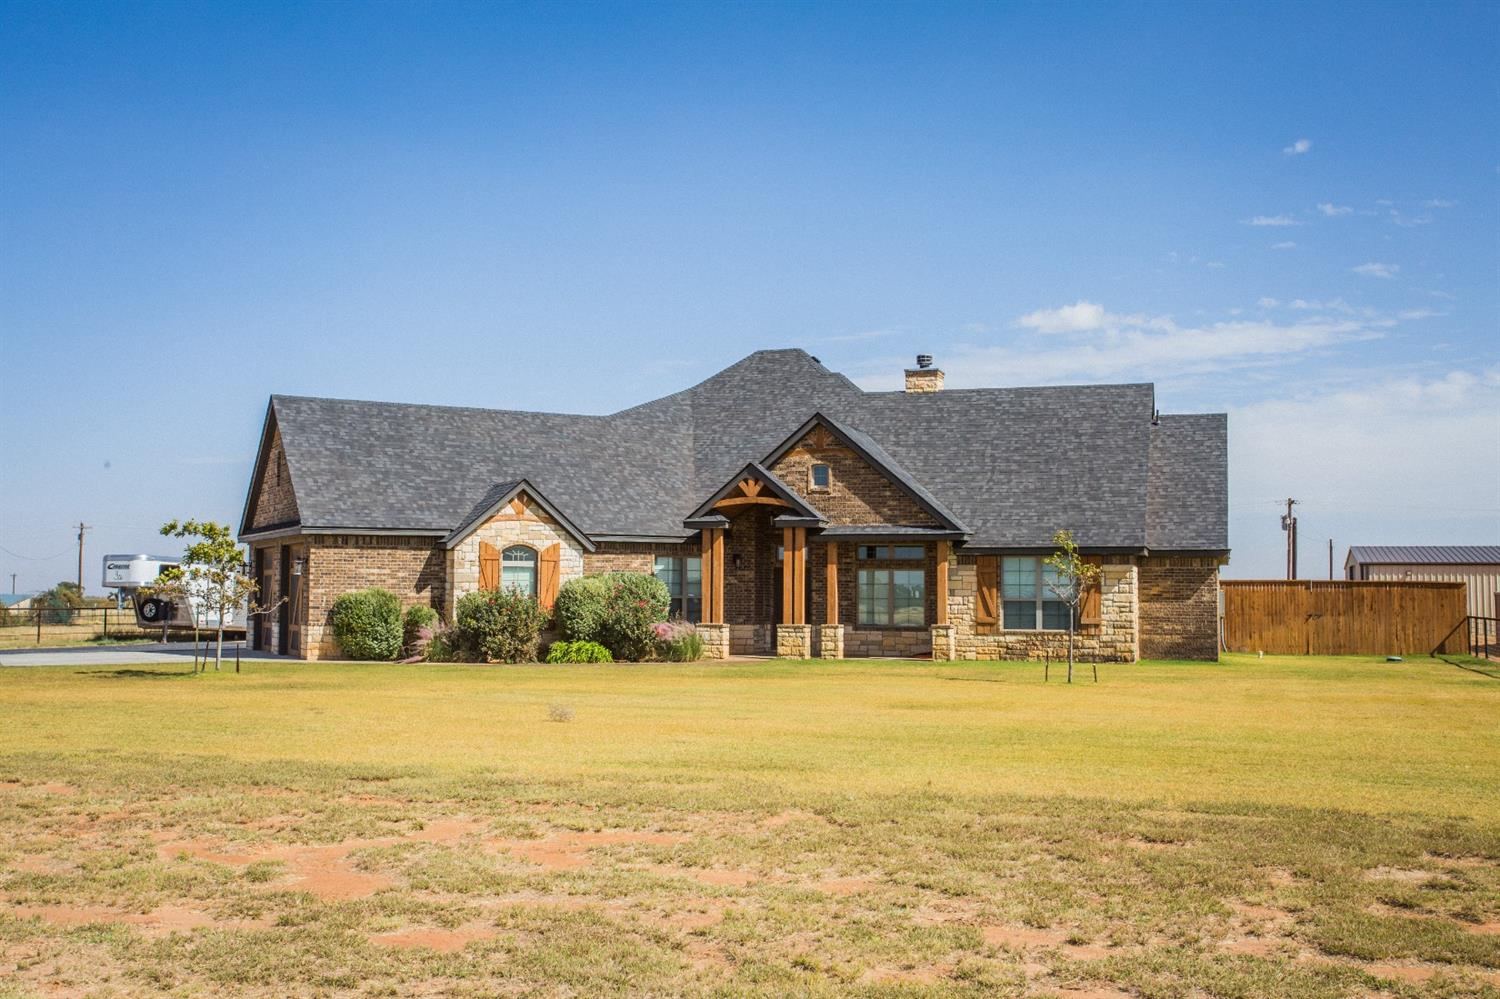 3915 Macaw - Ropesville